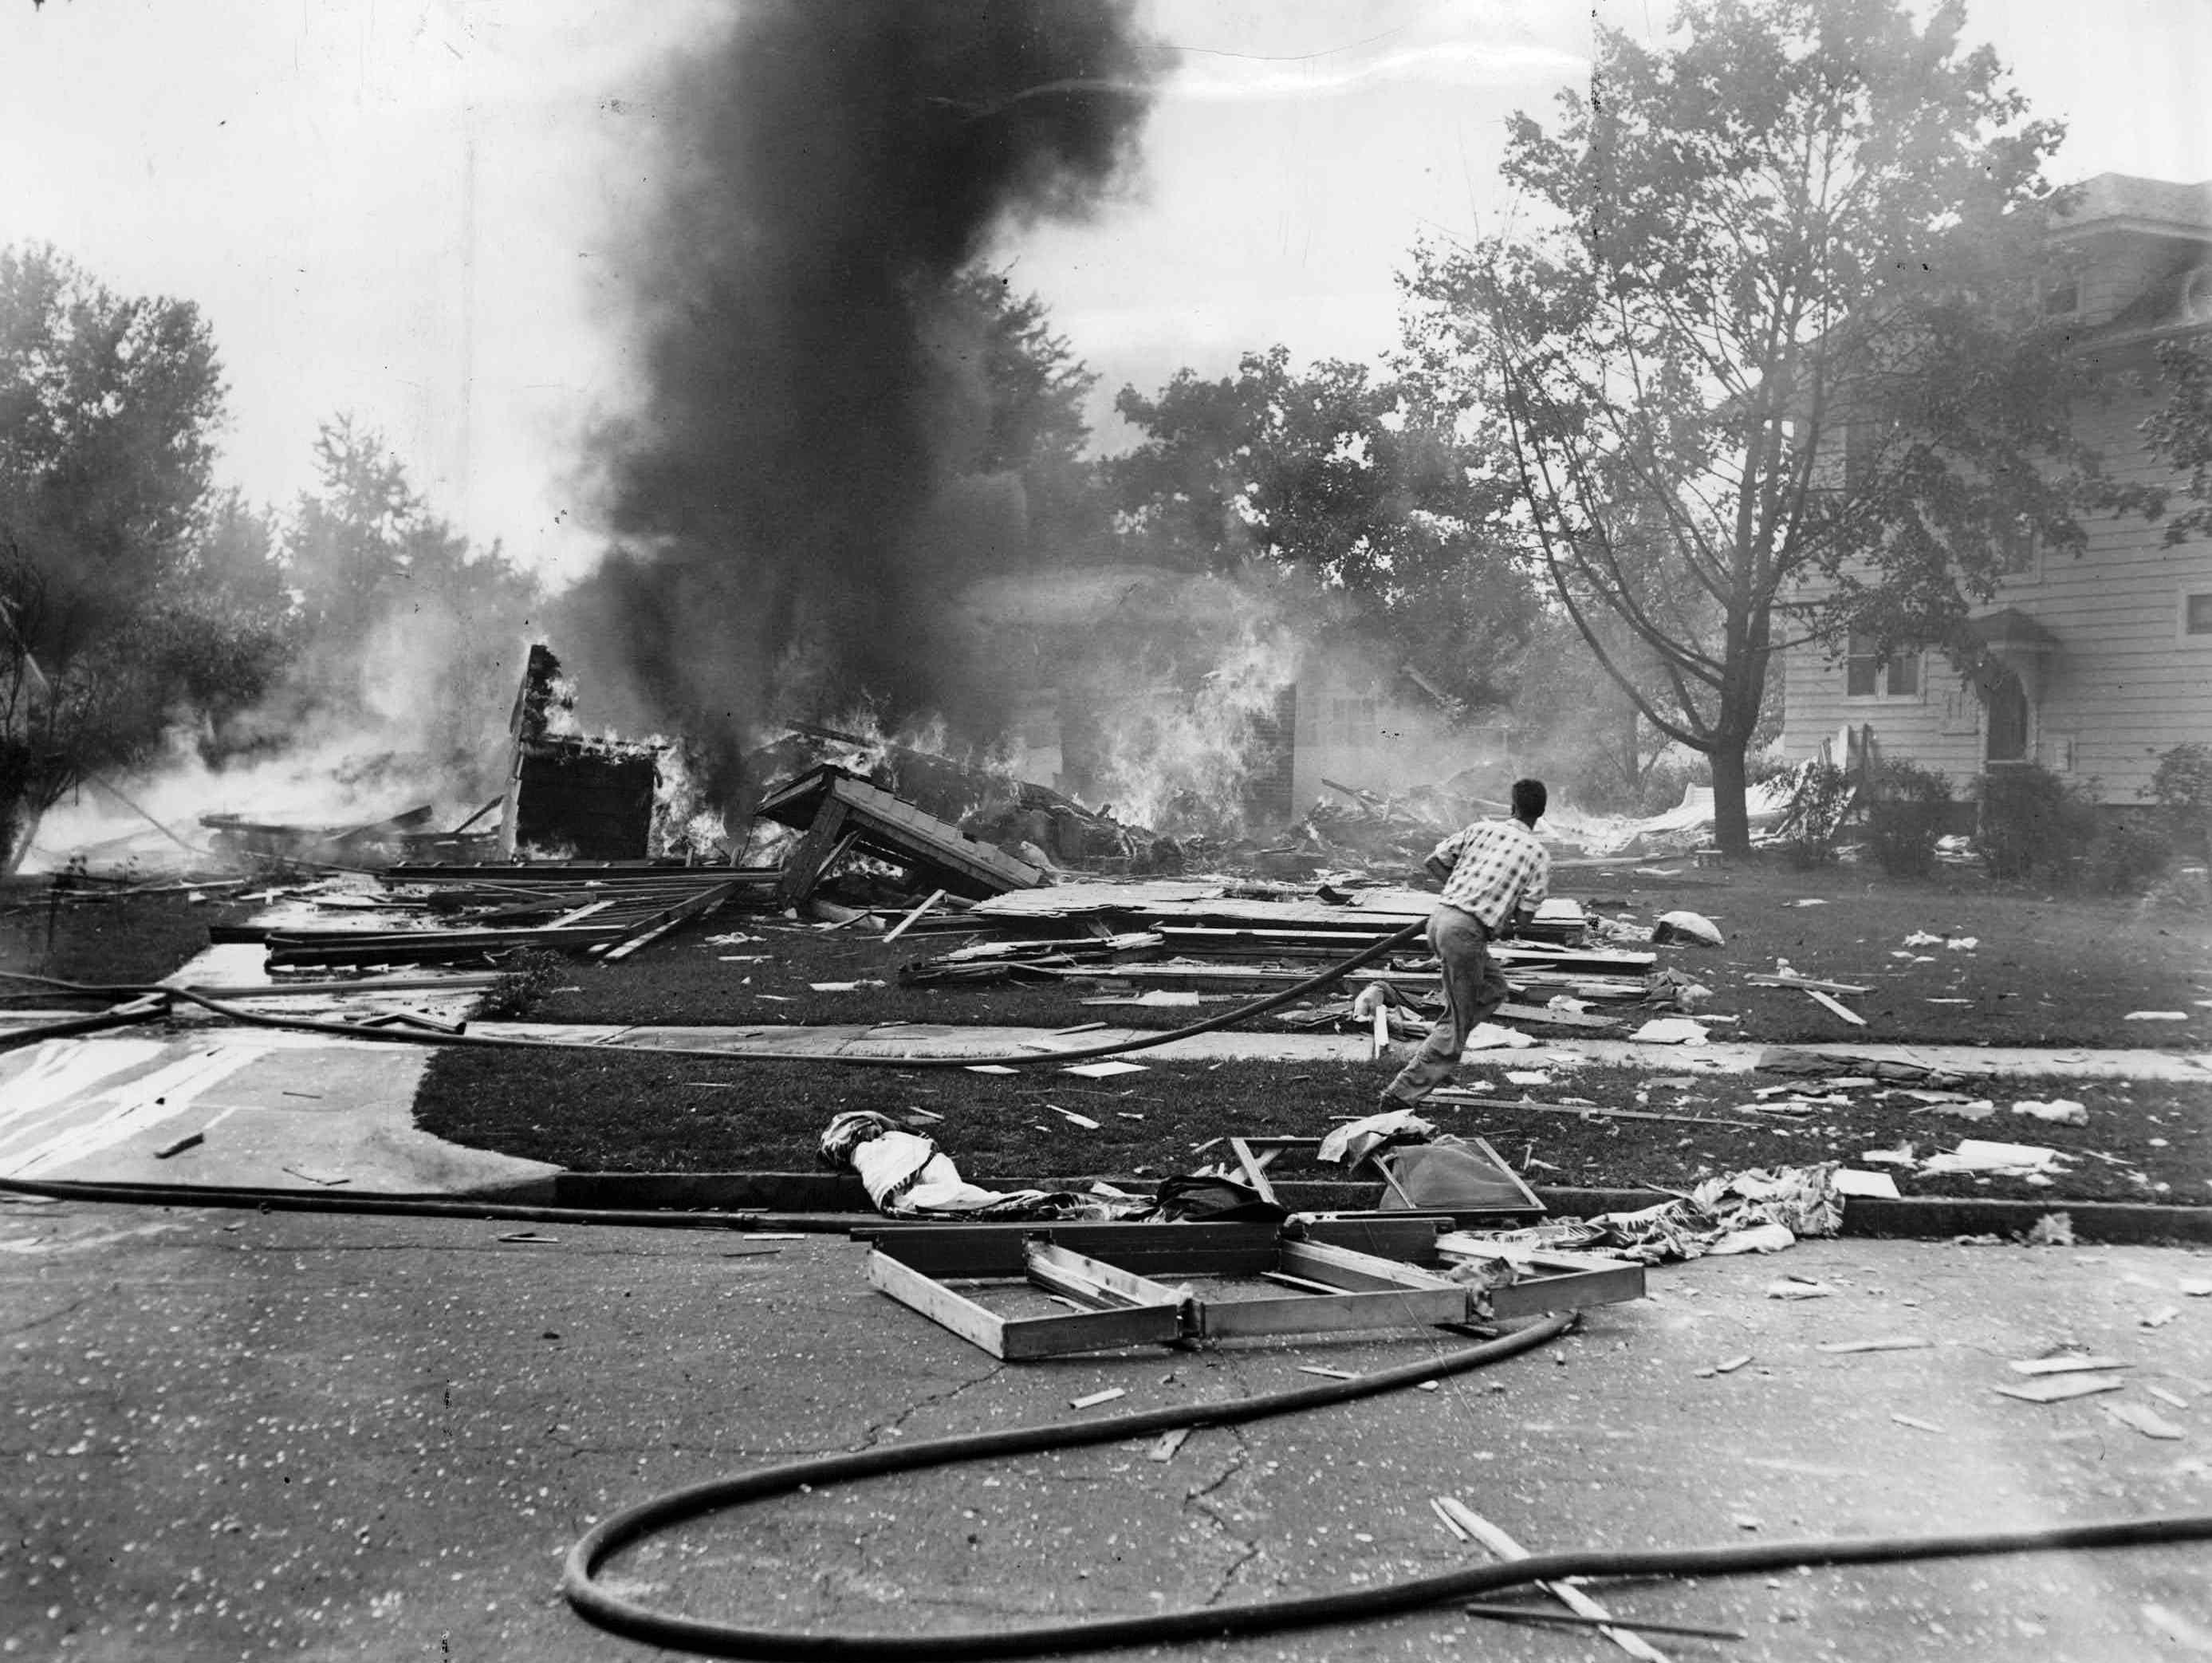 Only curling smoke and scattered household goods remain from this home on Fair Oaks Avenue. (Staff photo, 9/21/1951